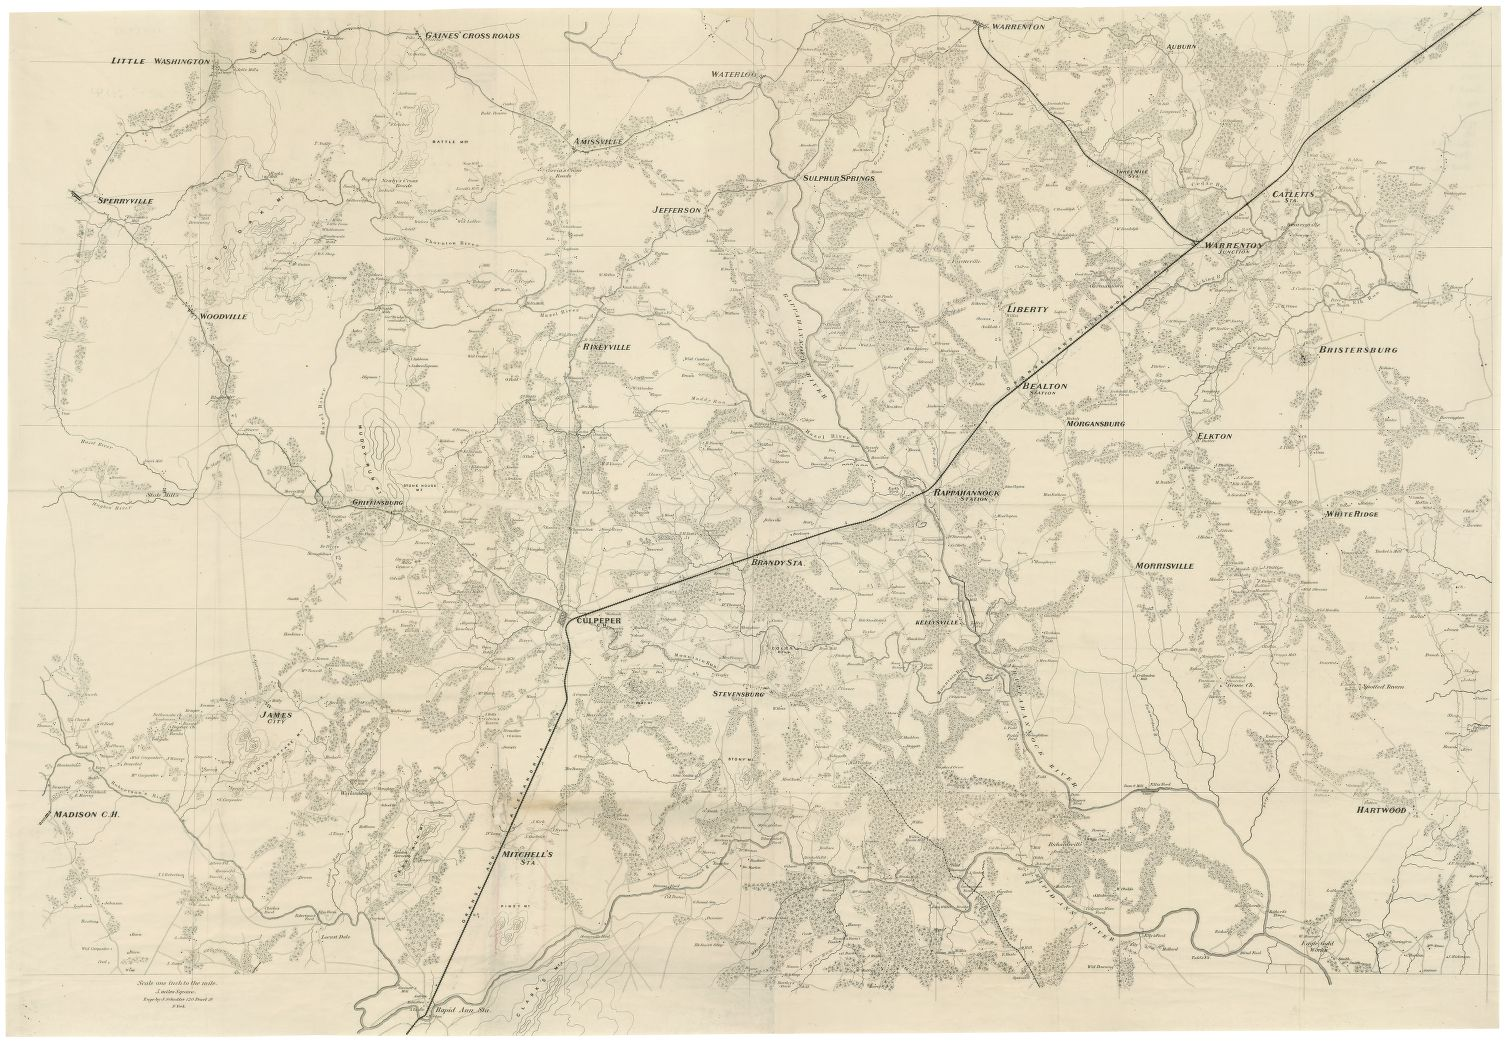 Central Virginia Map.1864 United States Army Corps Of Topographical Engineers Map Of